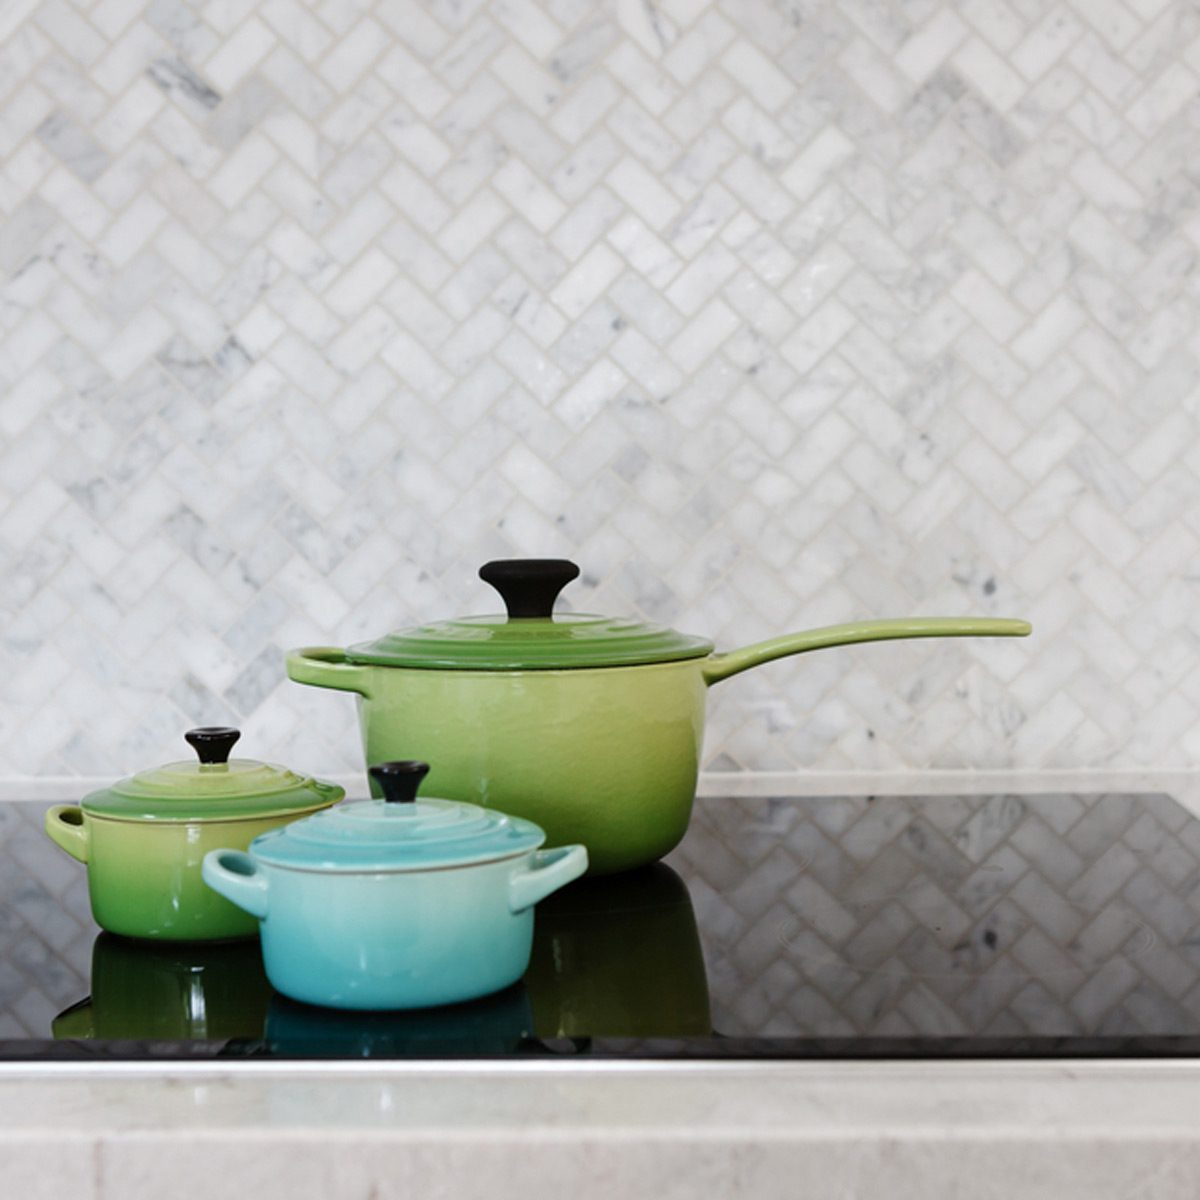 shutterstock_758302198 grey tile kitchen backsplash pots